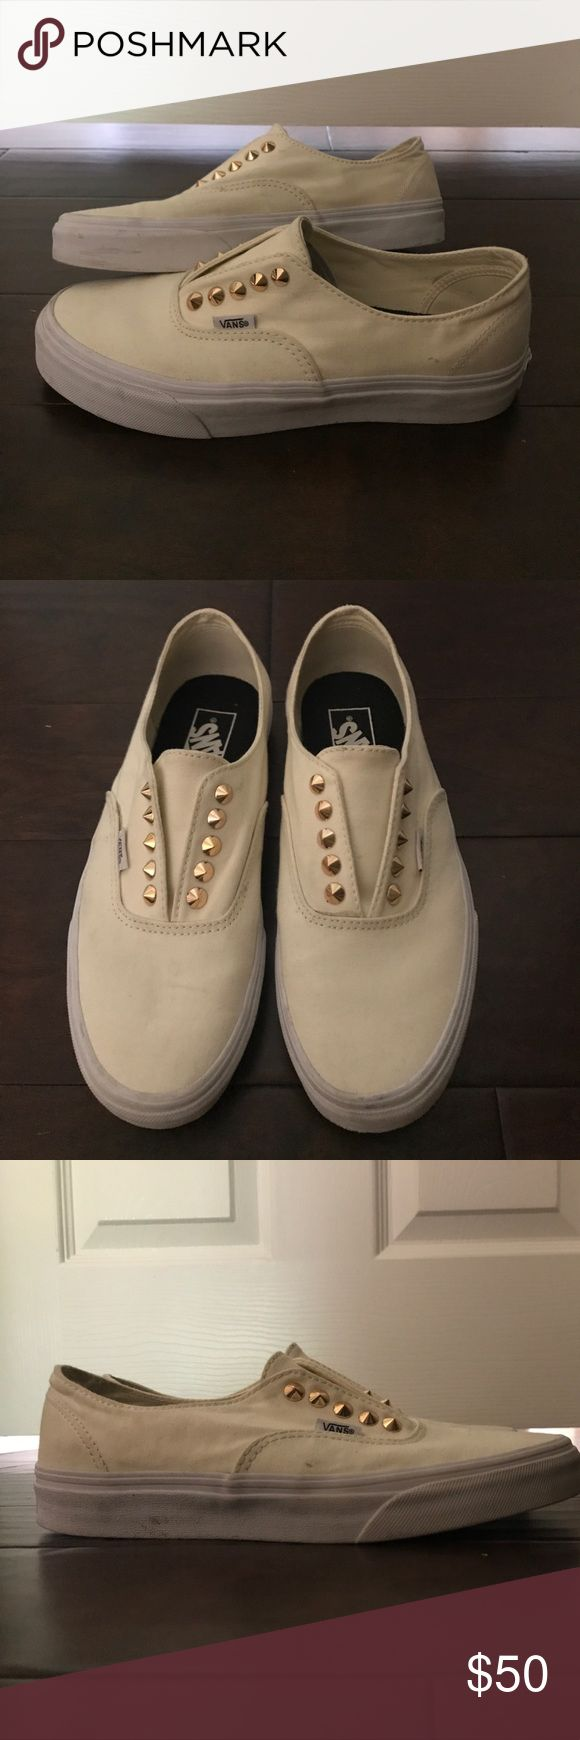 super cute studded vans cream and gold studded vans size 8.5. in very good shape, almost like brand new. Vans Shoes Sneakers